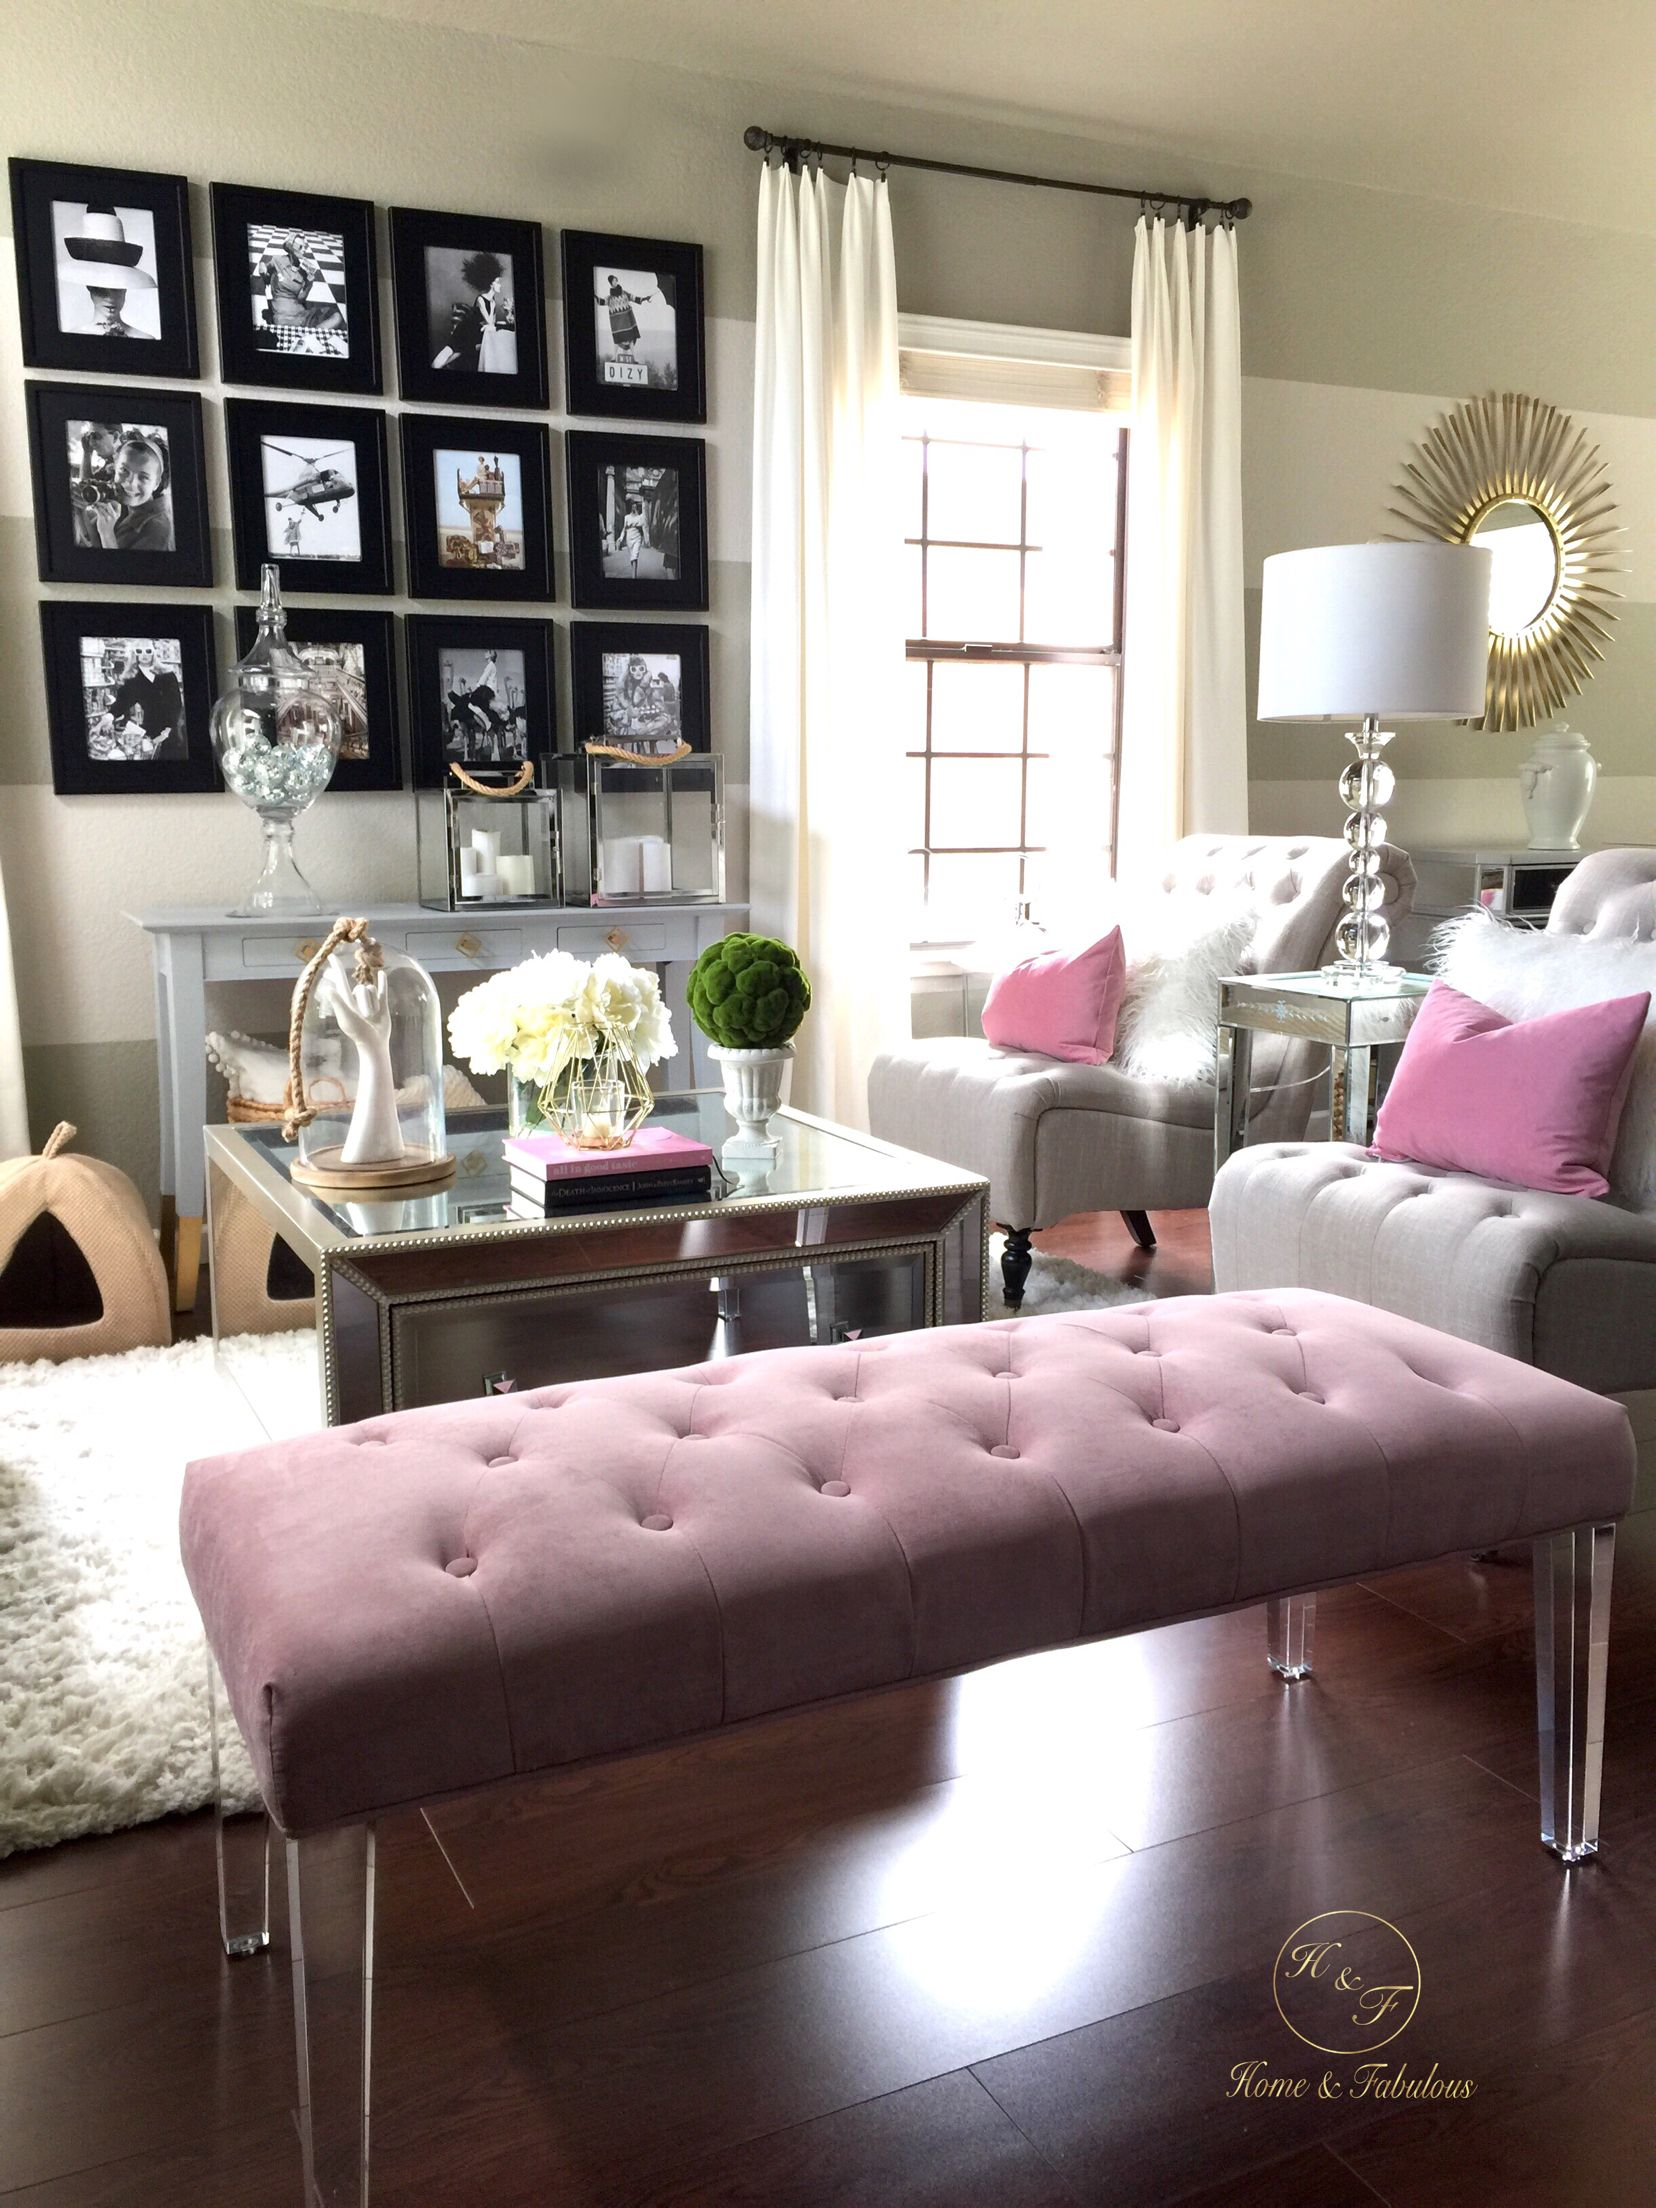 This Pink Tufted Bench From Homegoods Really Makes My Living Room Endearing Interior Decor Ideas For Living Rooms Inspiration Design